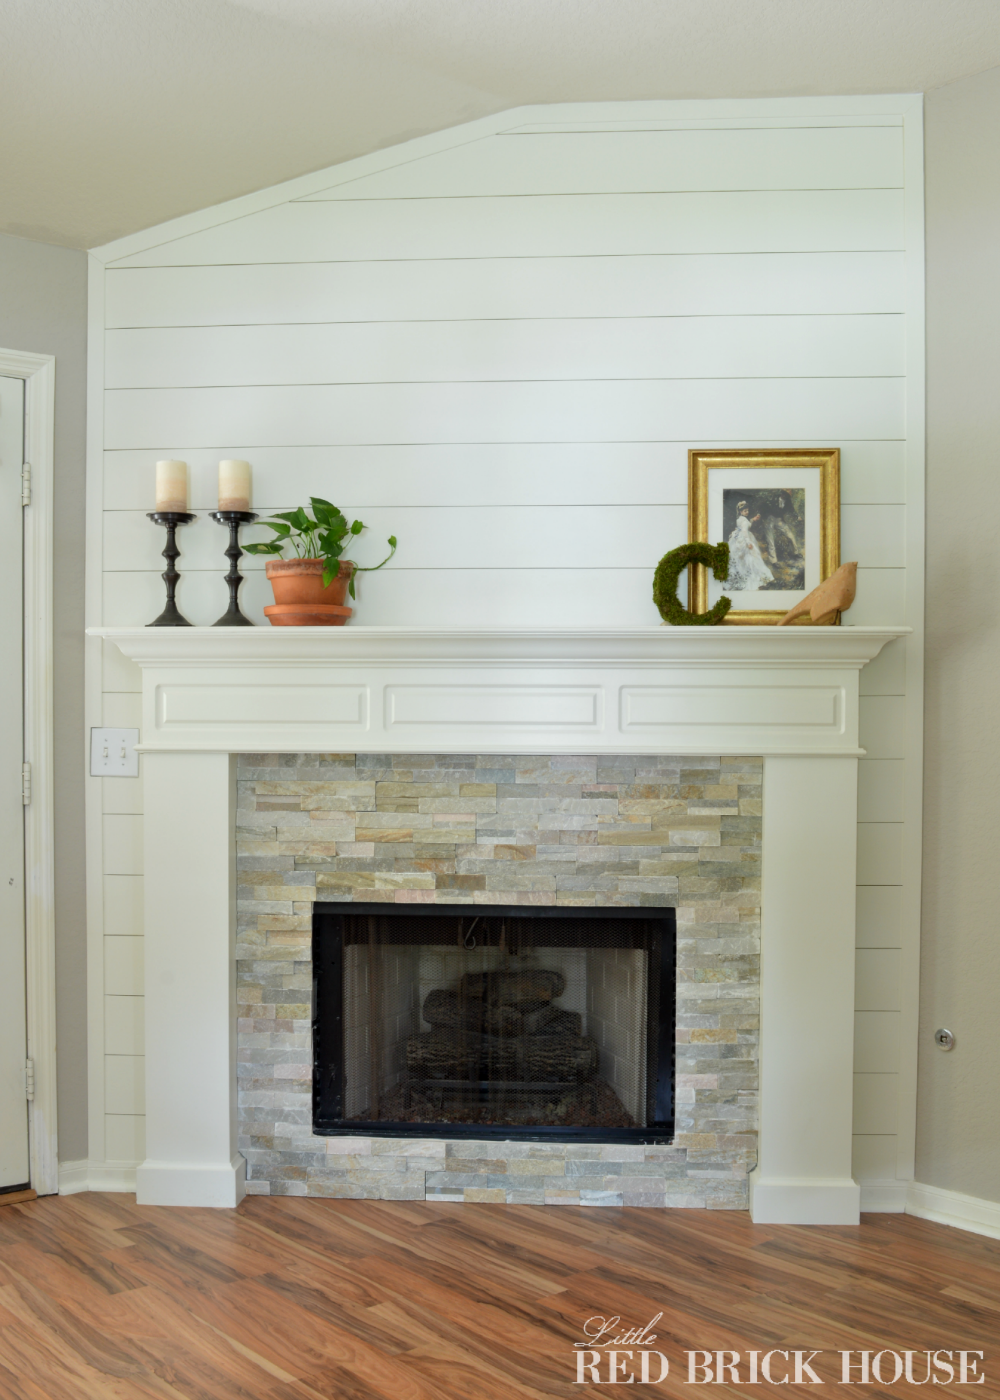 Check out the steps I used to apply stonework to my fireplace.